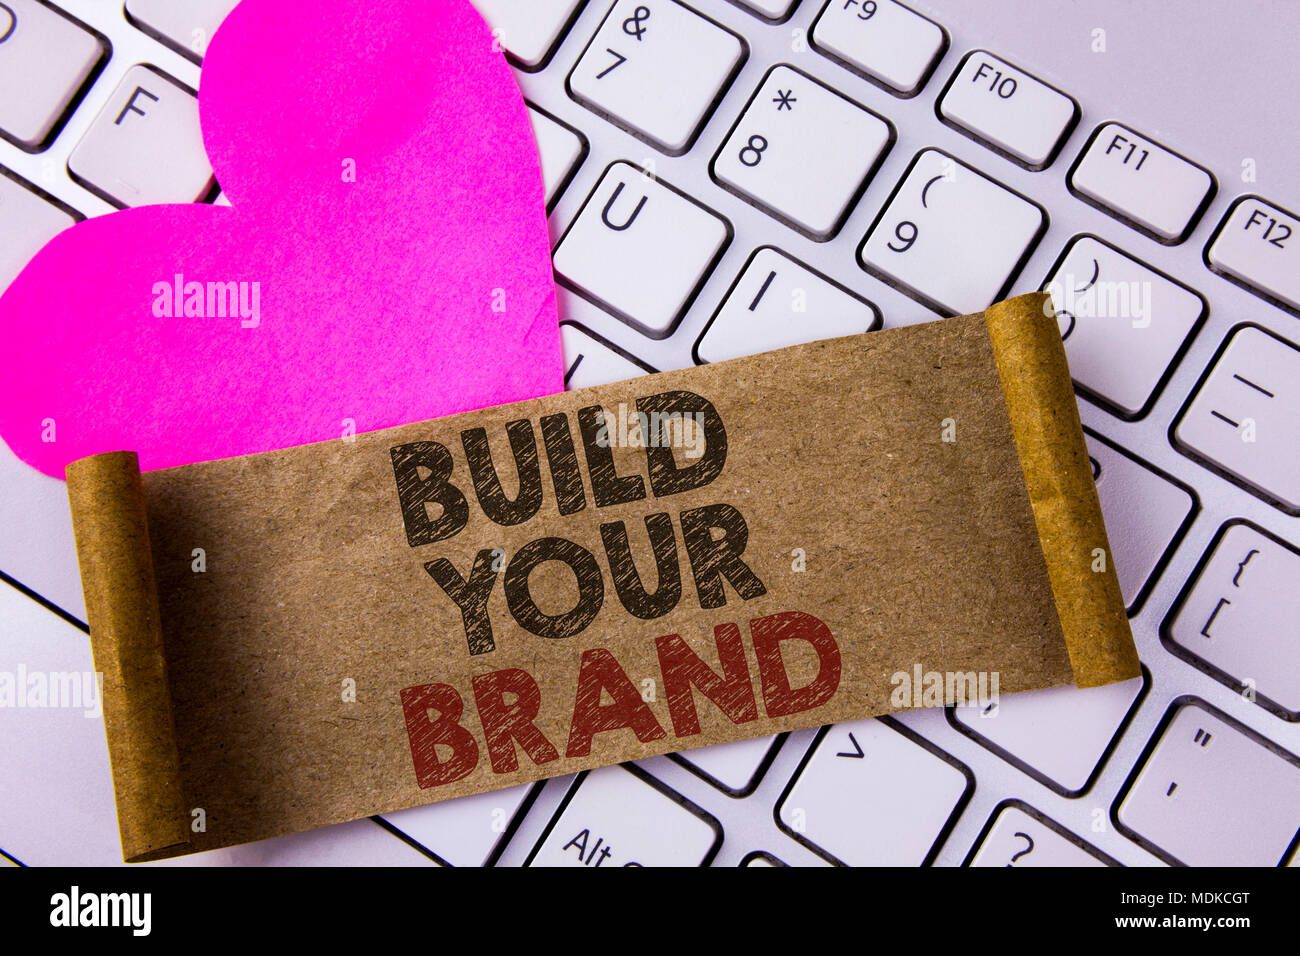 Build Your Own Stock Photos & Build Your Own Stock Images - Alamy